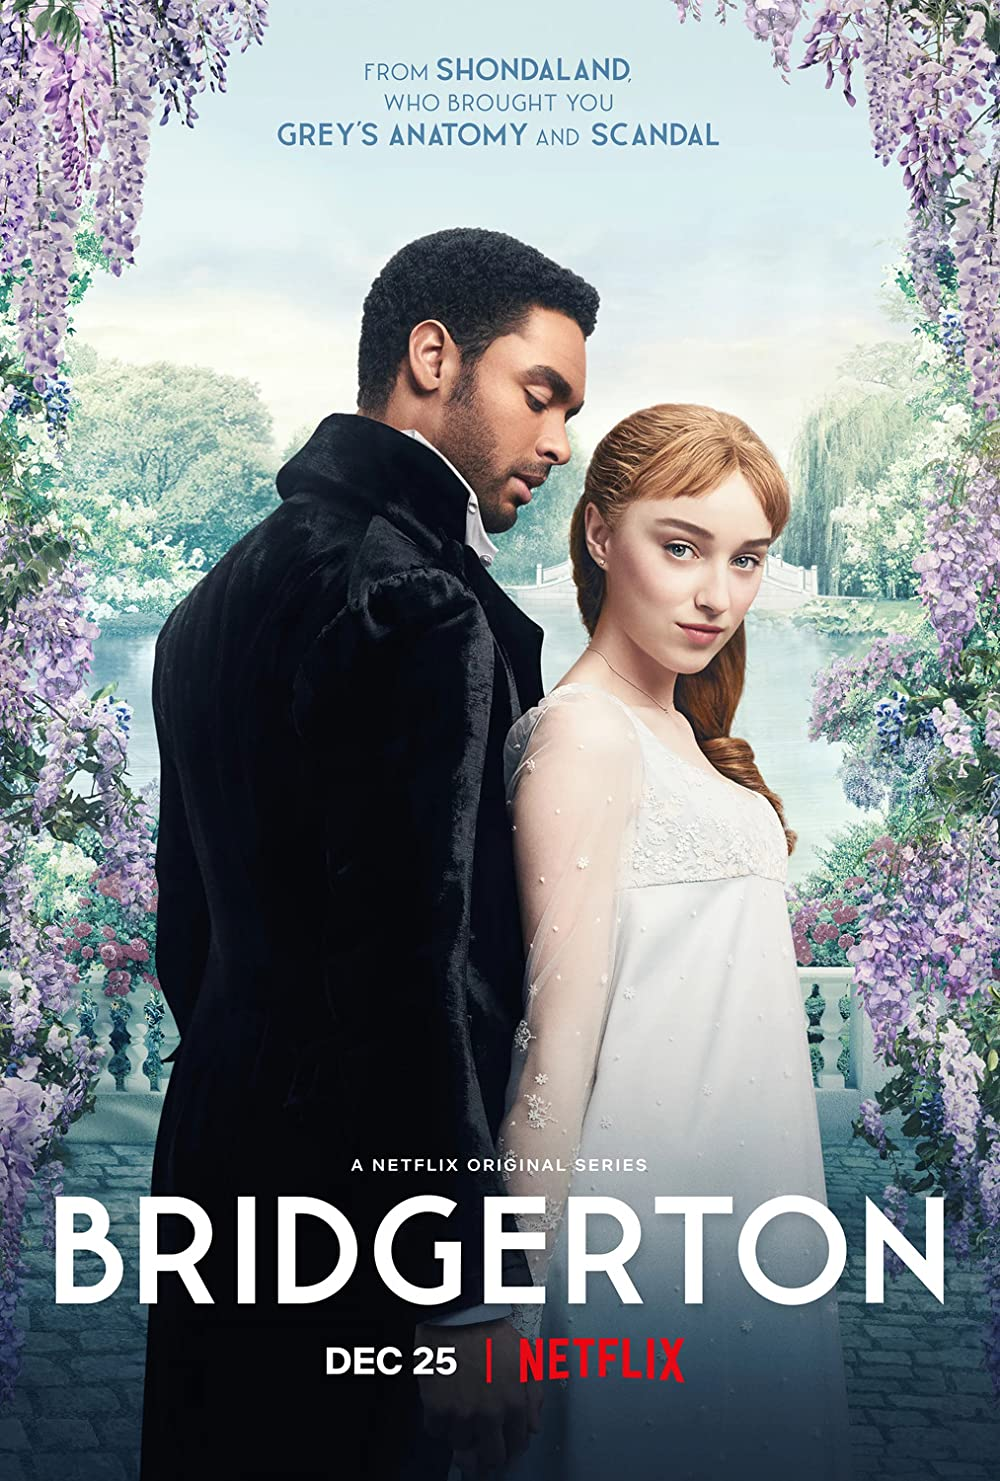 Bridgerton S01 (2020) Hindi Dubbed Netflix Complete Web Series HDRip 1.5GB